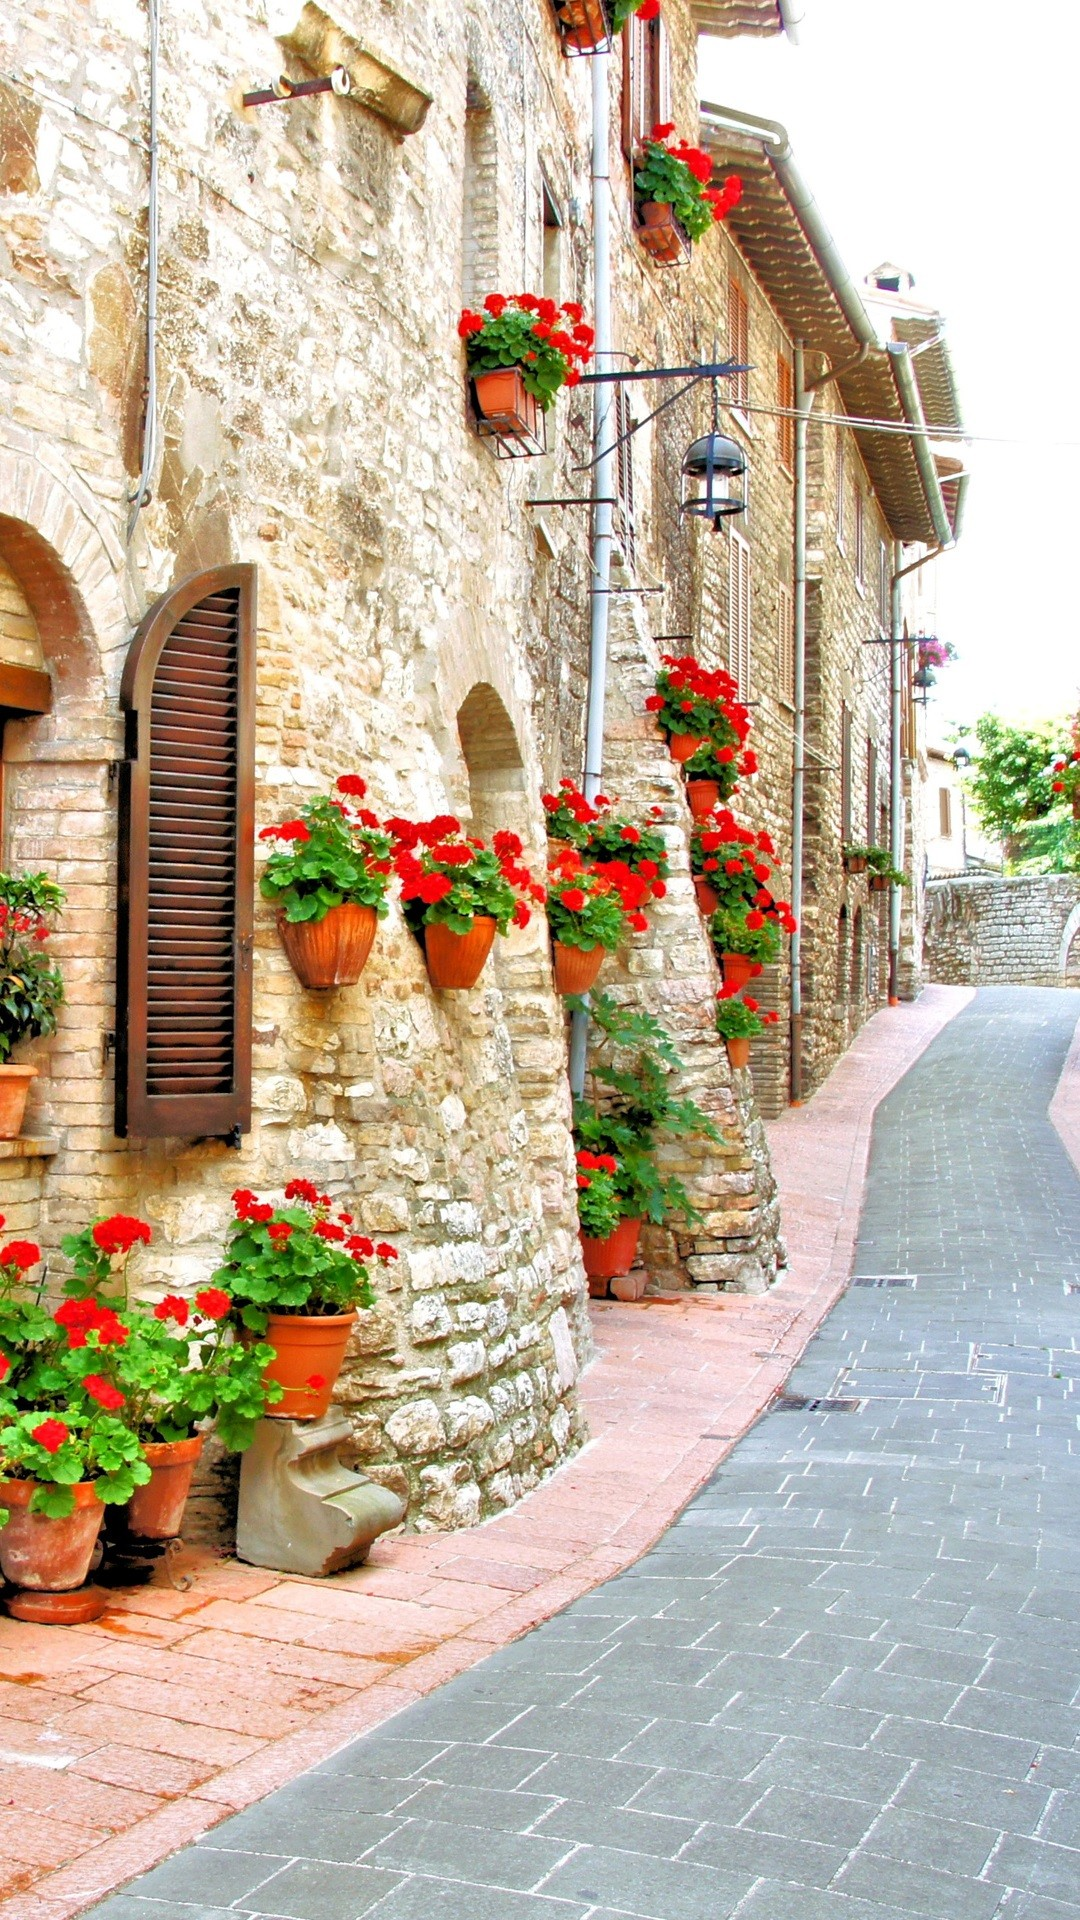 Beautiful Residential Area Of Italy